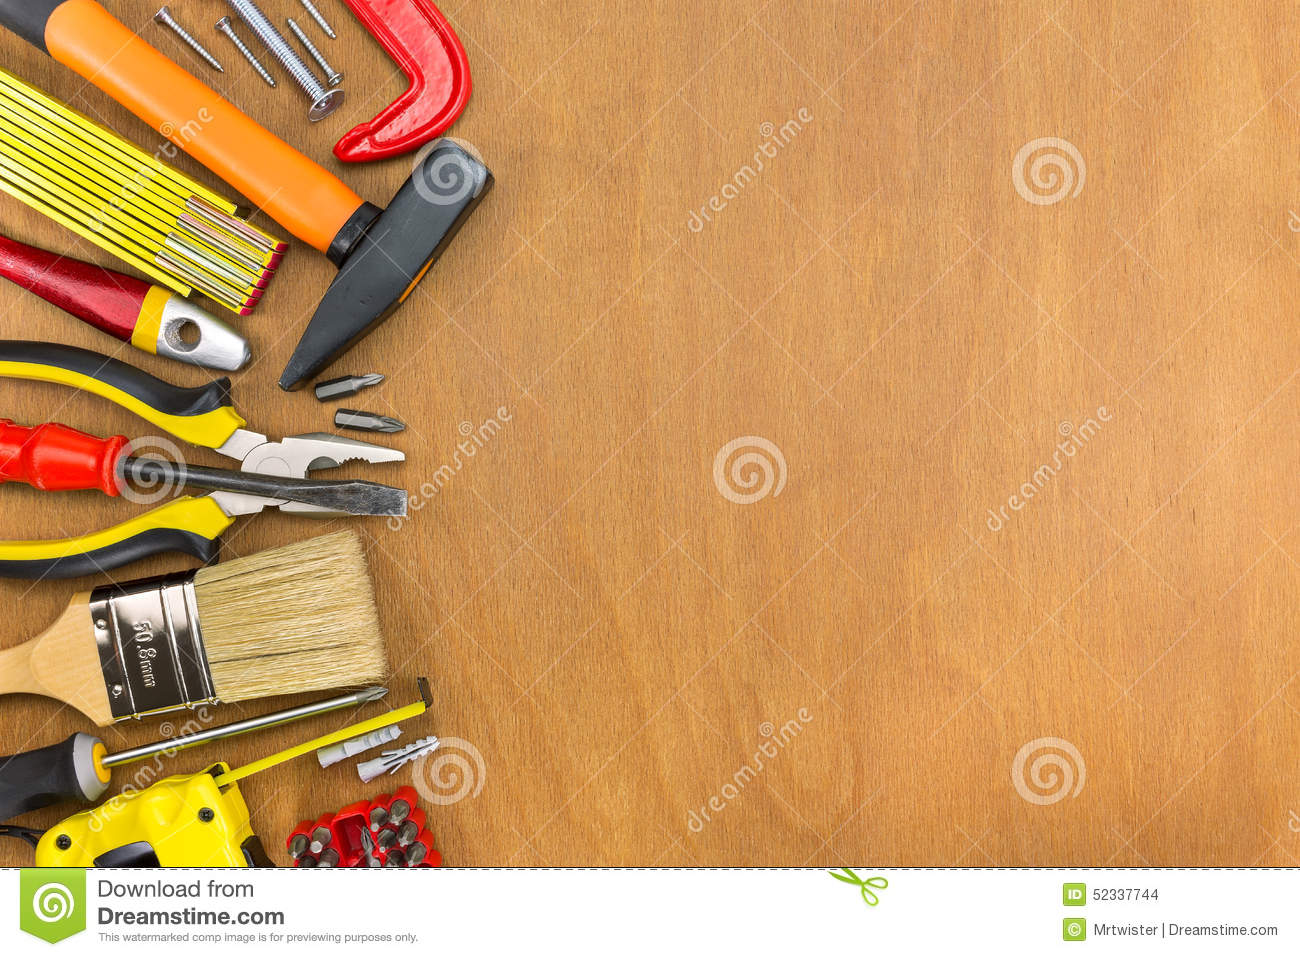 Wooden workshop table with tools stock photo image 52337744 for Table utensils